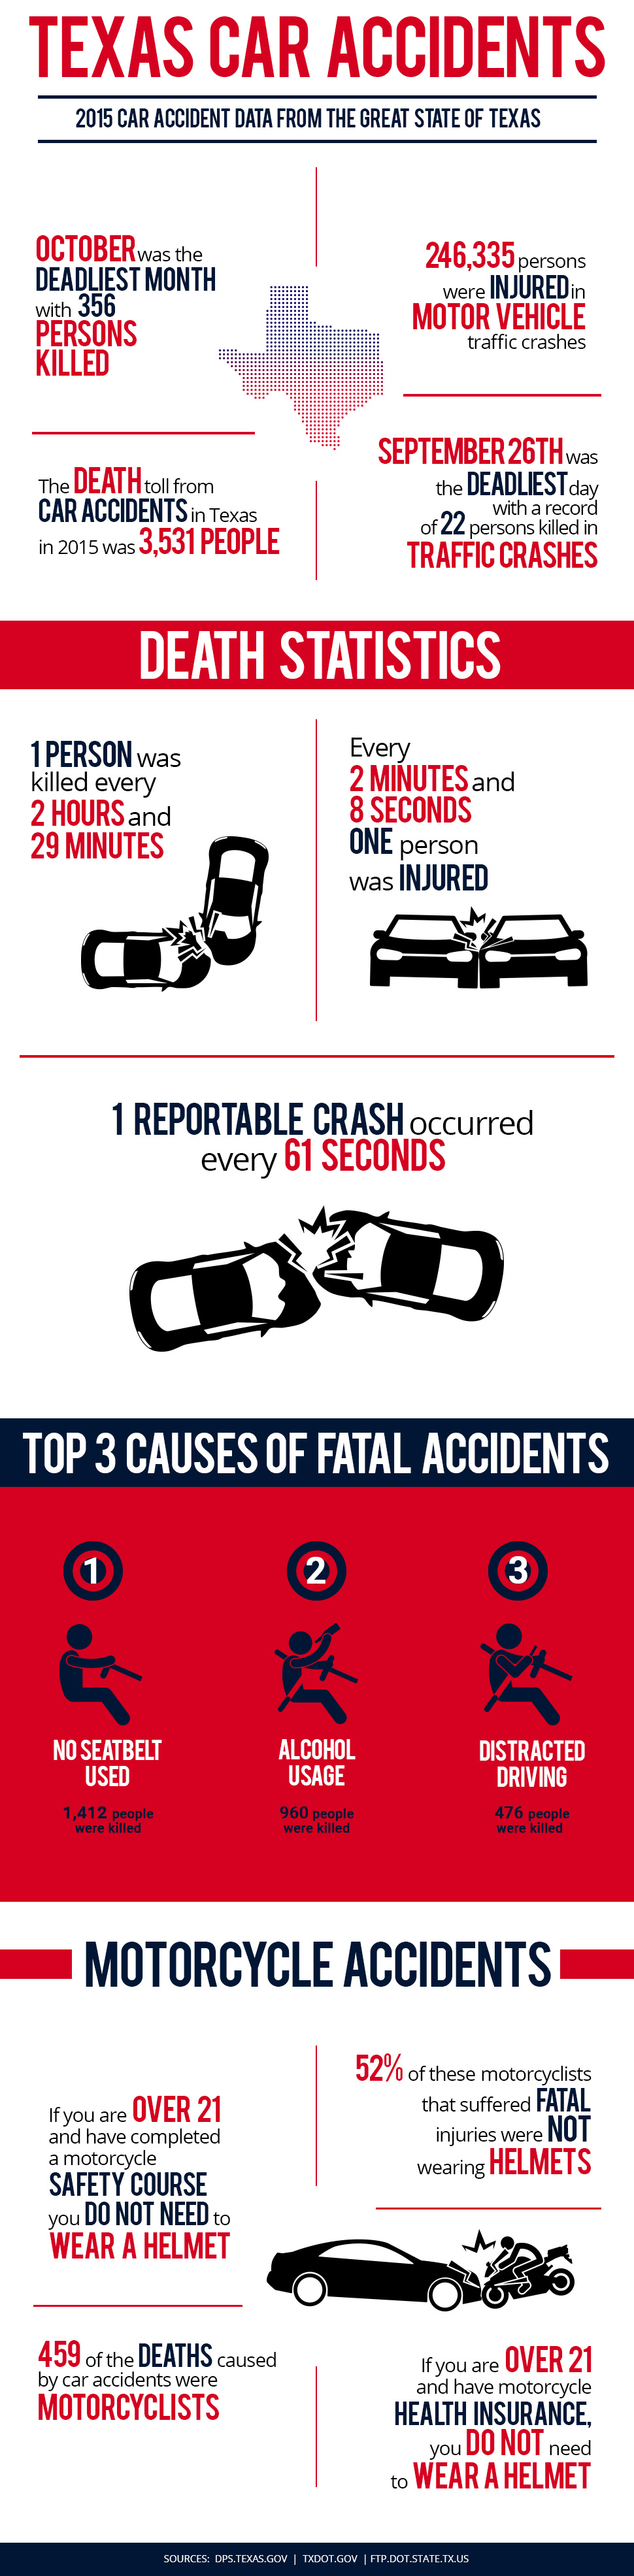 Texas Car Accident Statistics Infographic